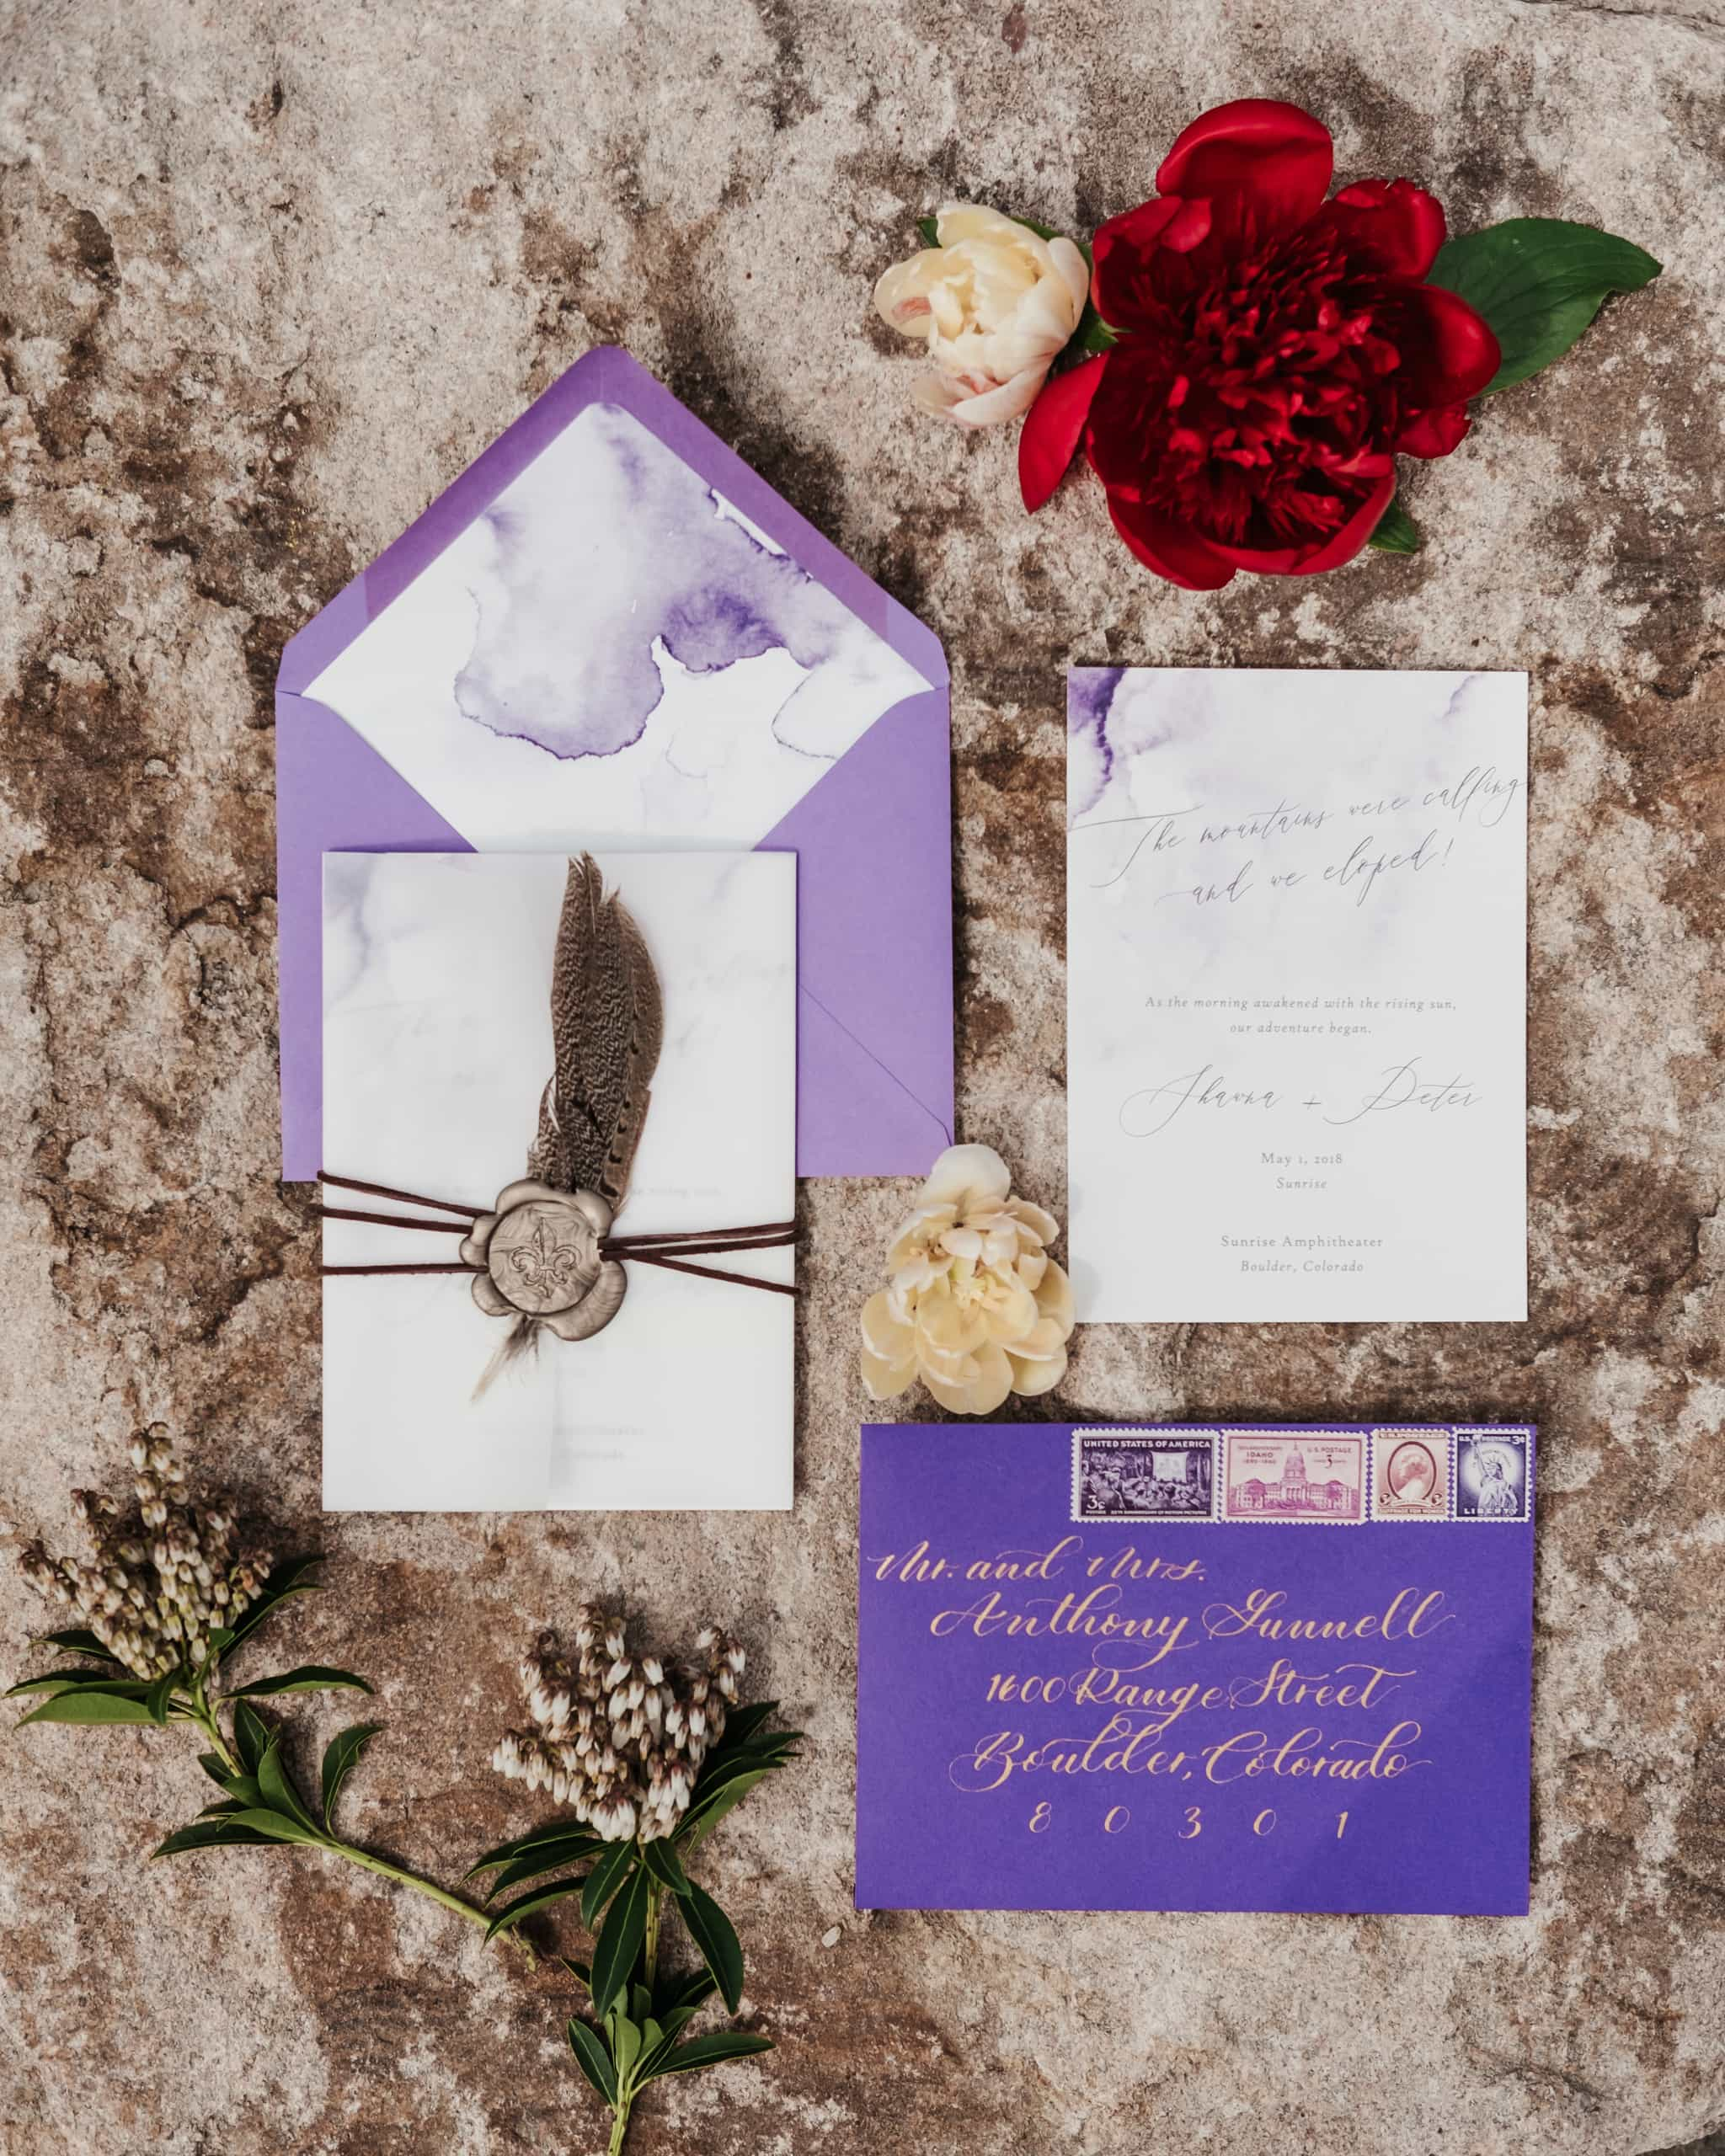 Elopement announcement by XO WYO + CO, wedding stationery, purple wedding envelopes